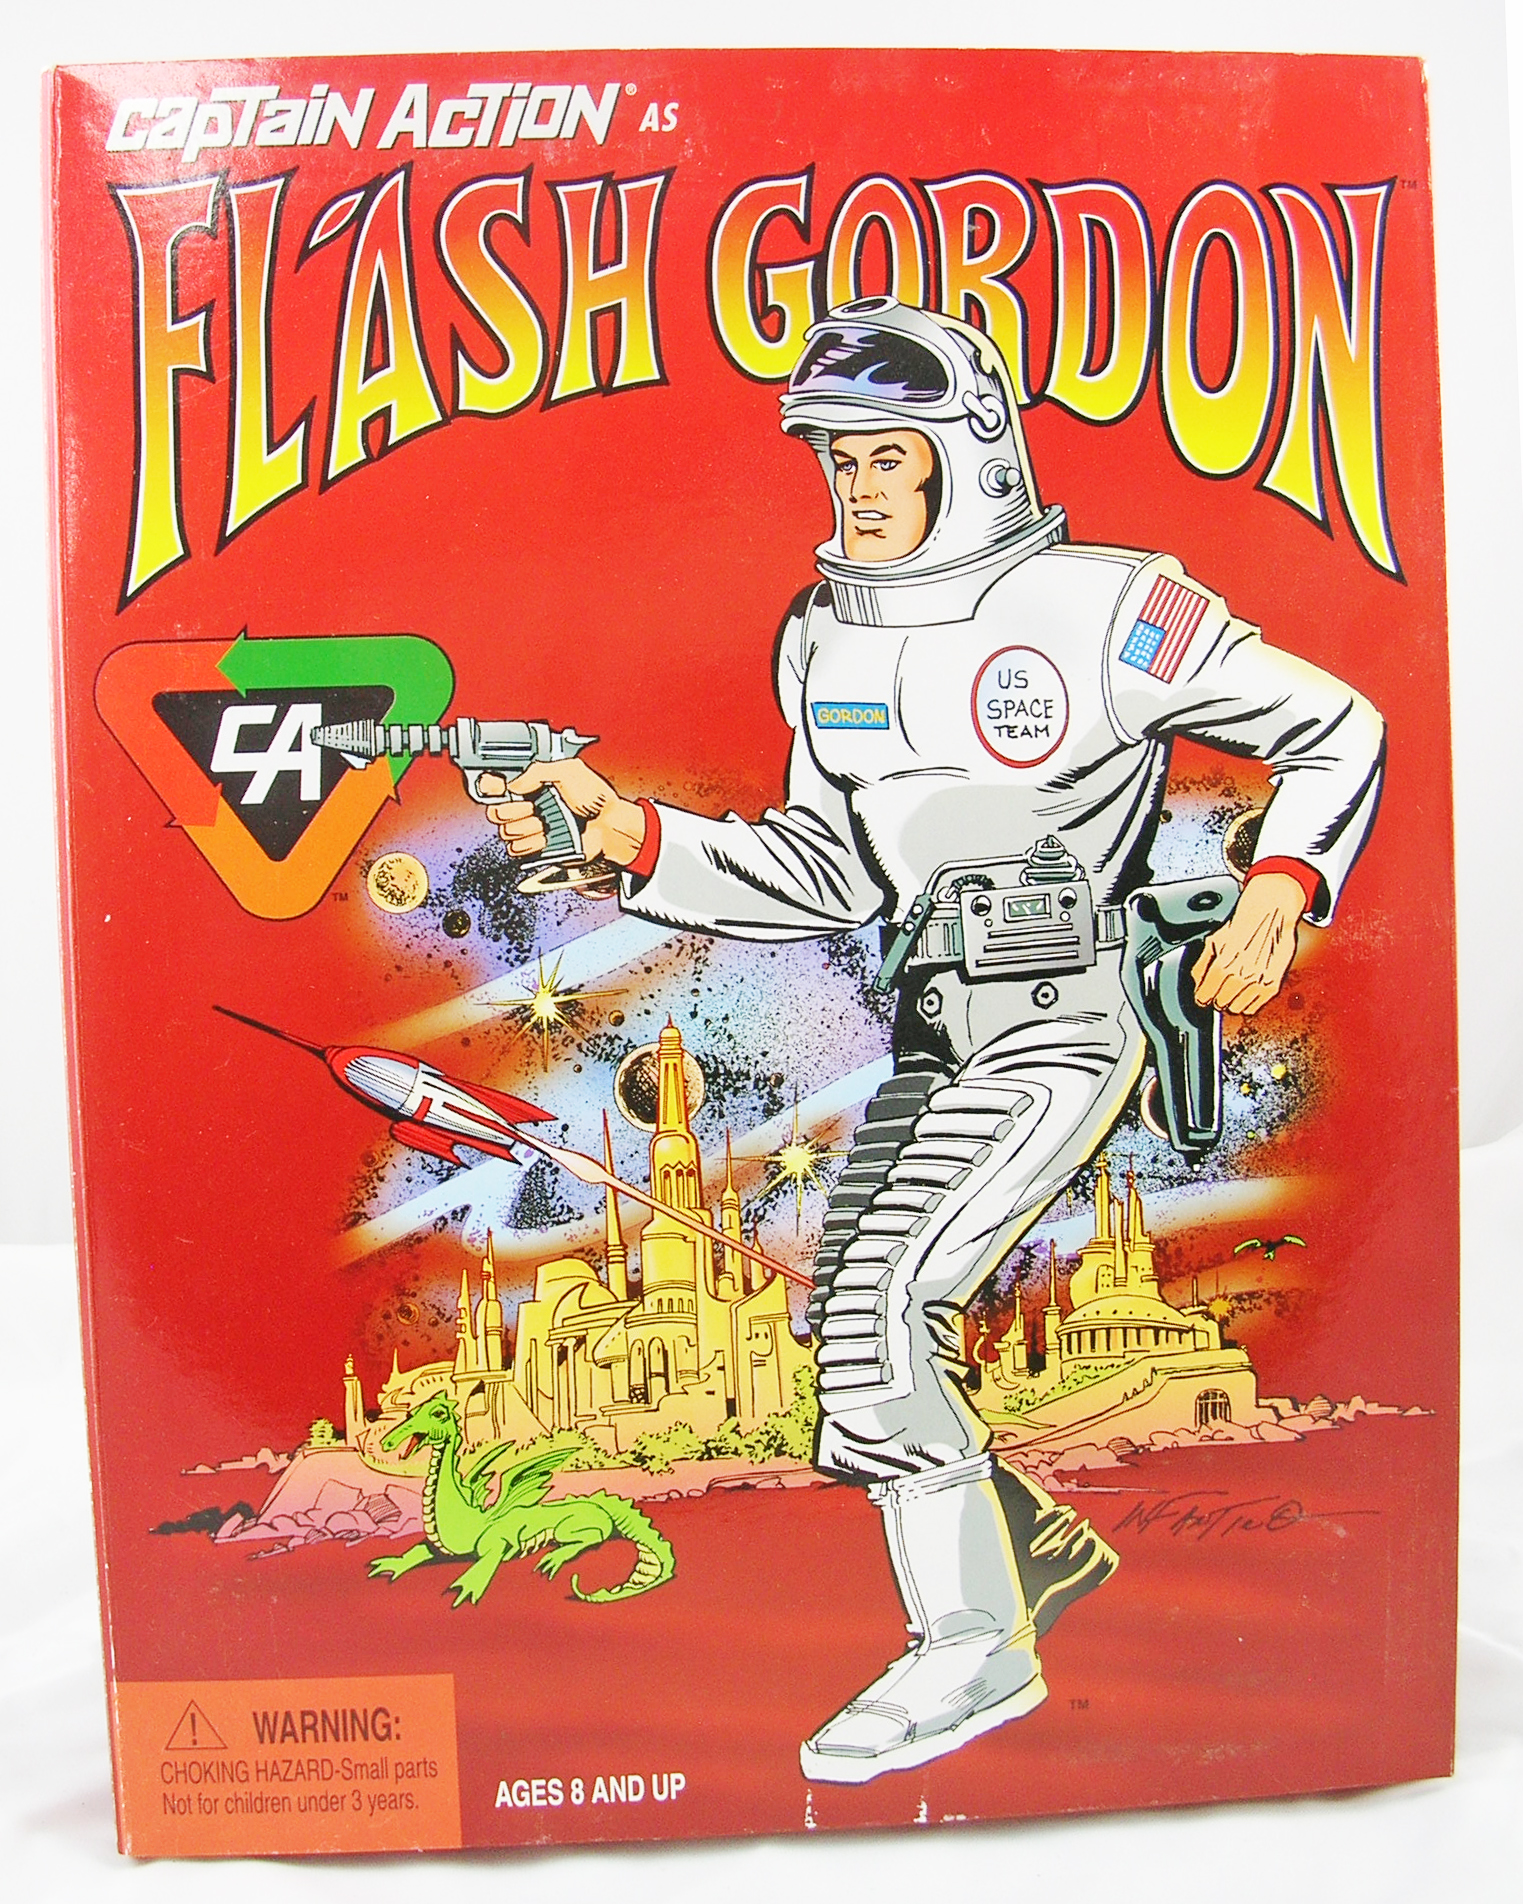 Captain Action as Flash Gordon